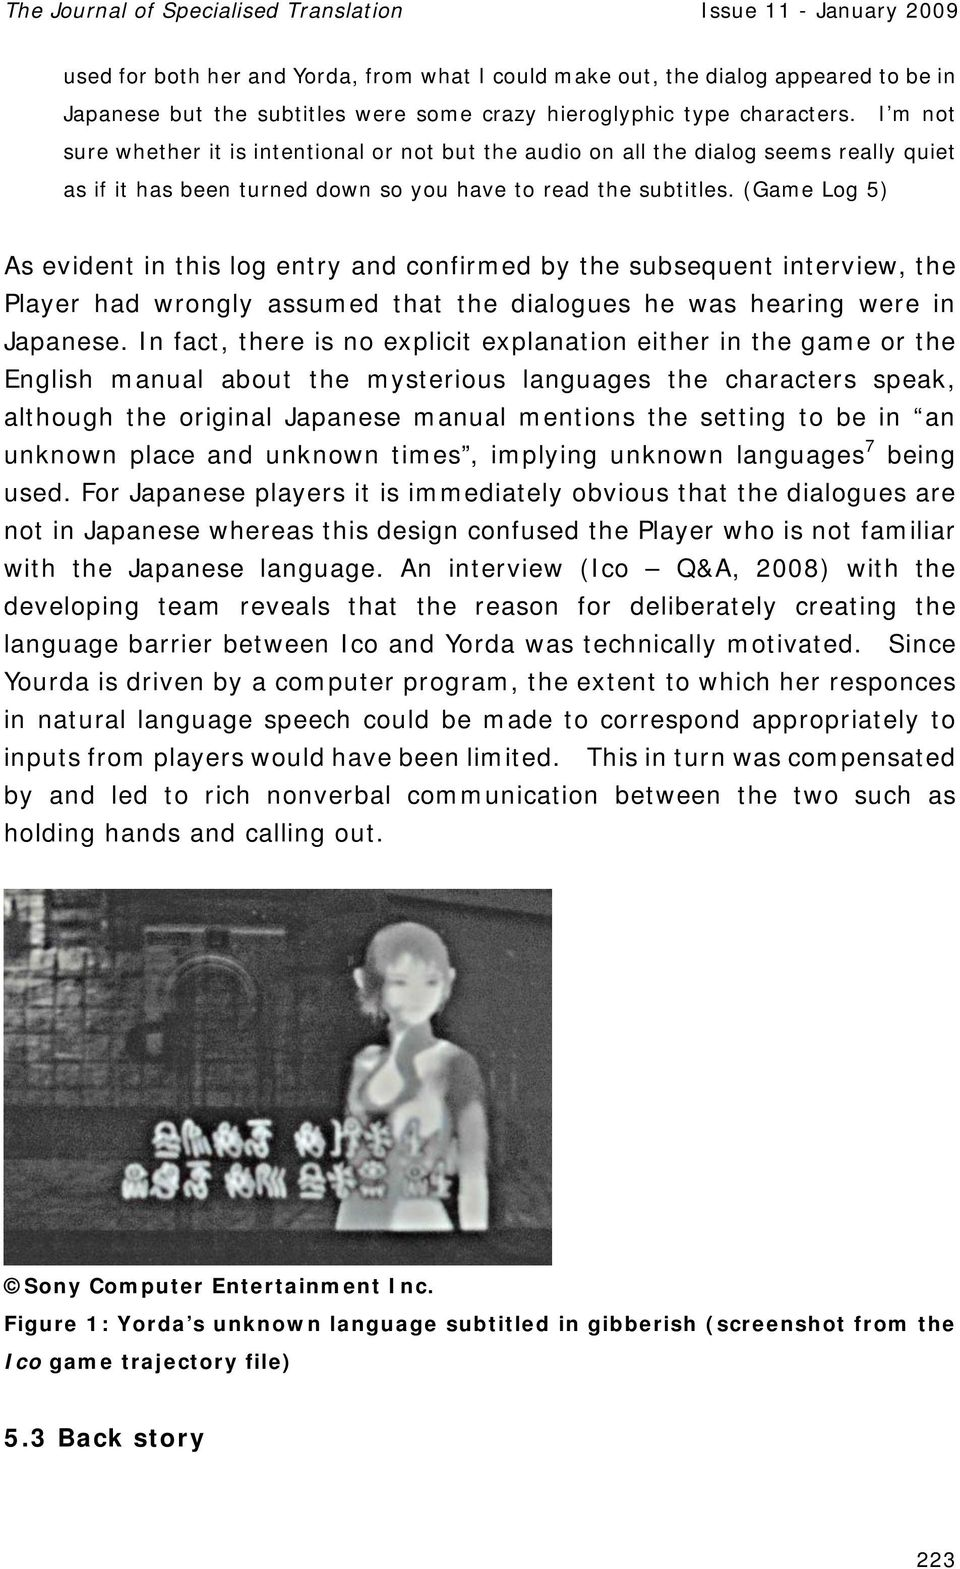 (Game Log 5) As evident in this log entry and confirmed by the subsequent interview, the Player had wrongly assumed that the dialogues he was hearing were in Japanese.